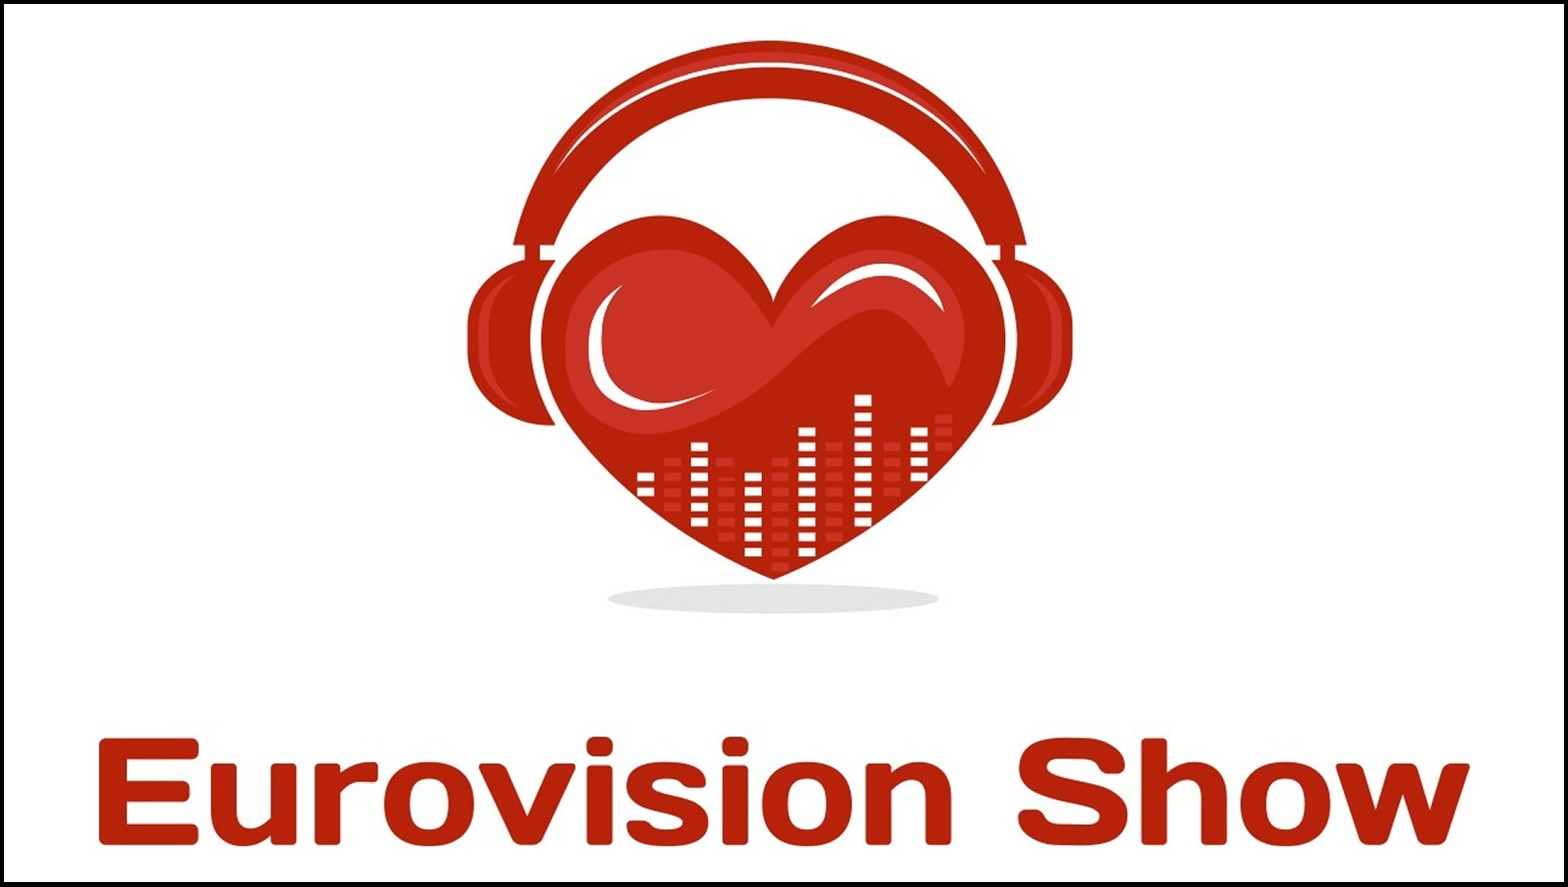 The Eurovision Show: Sunday 3pm – 4pm